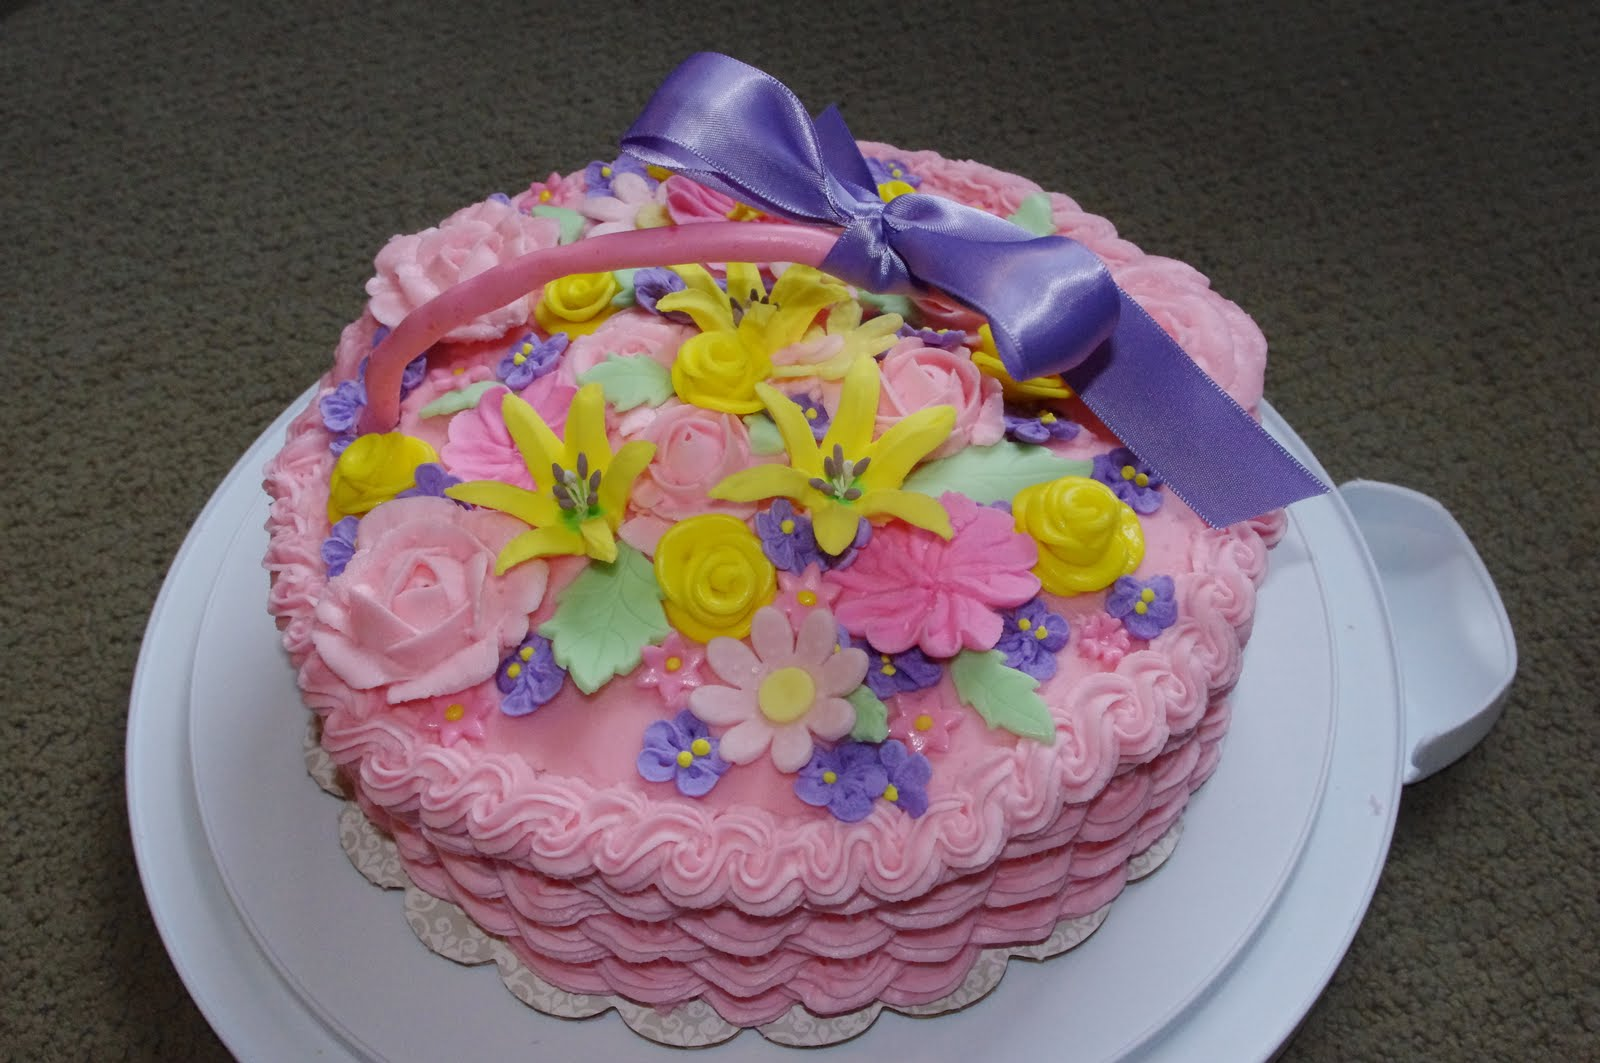 How To Make A Basket Of Flowers Cake : Goodness bake flower basket cake